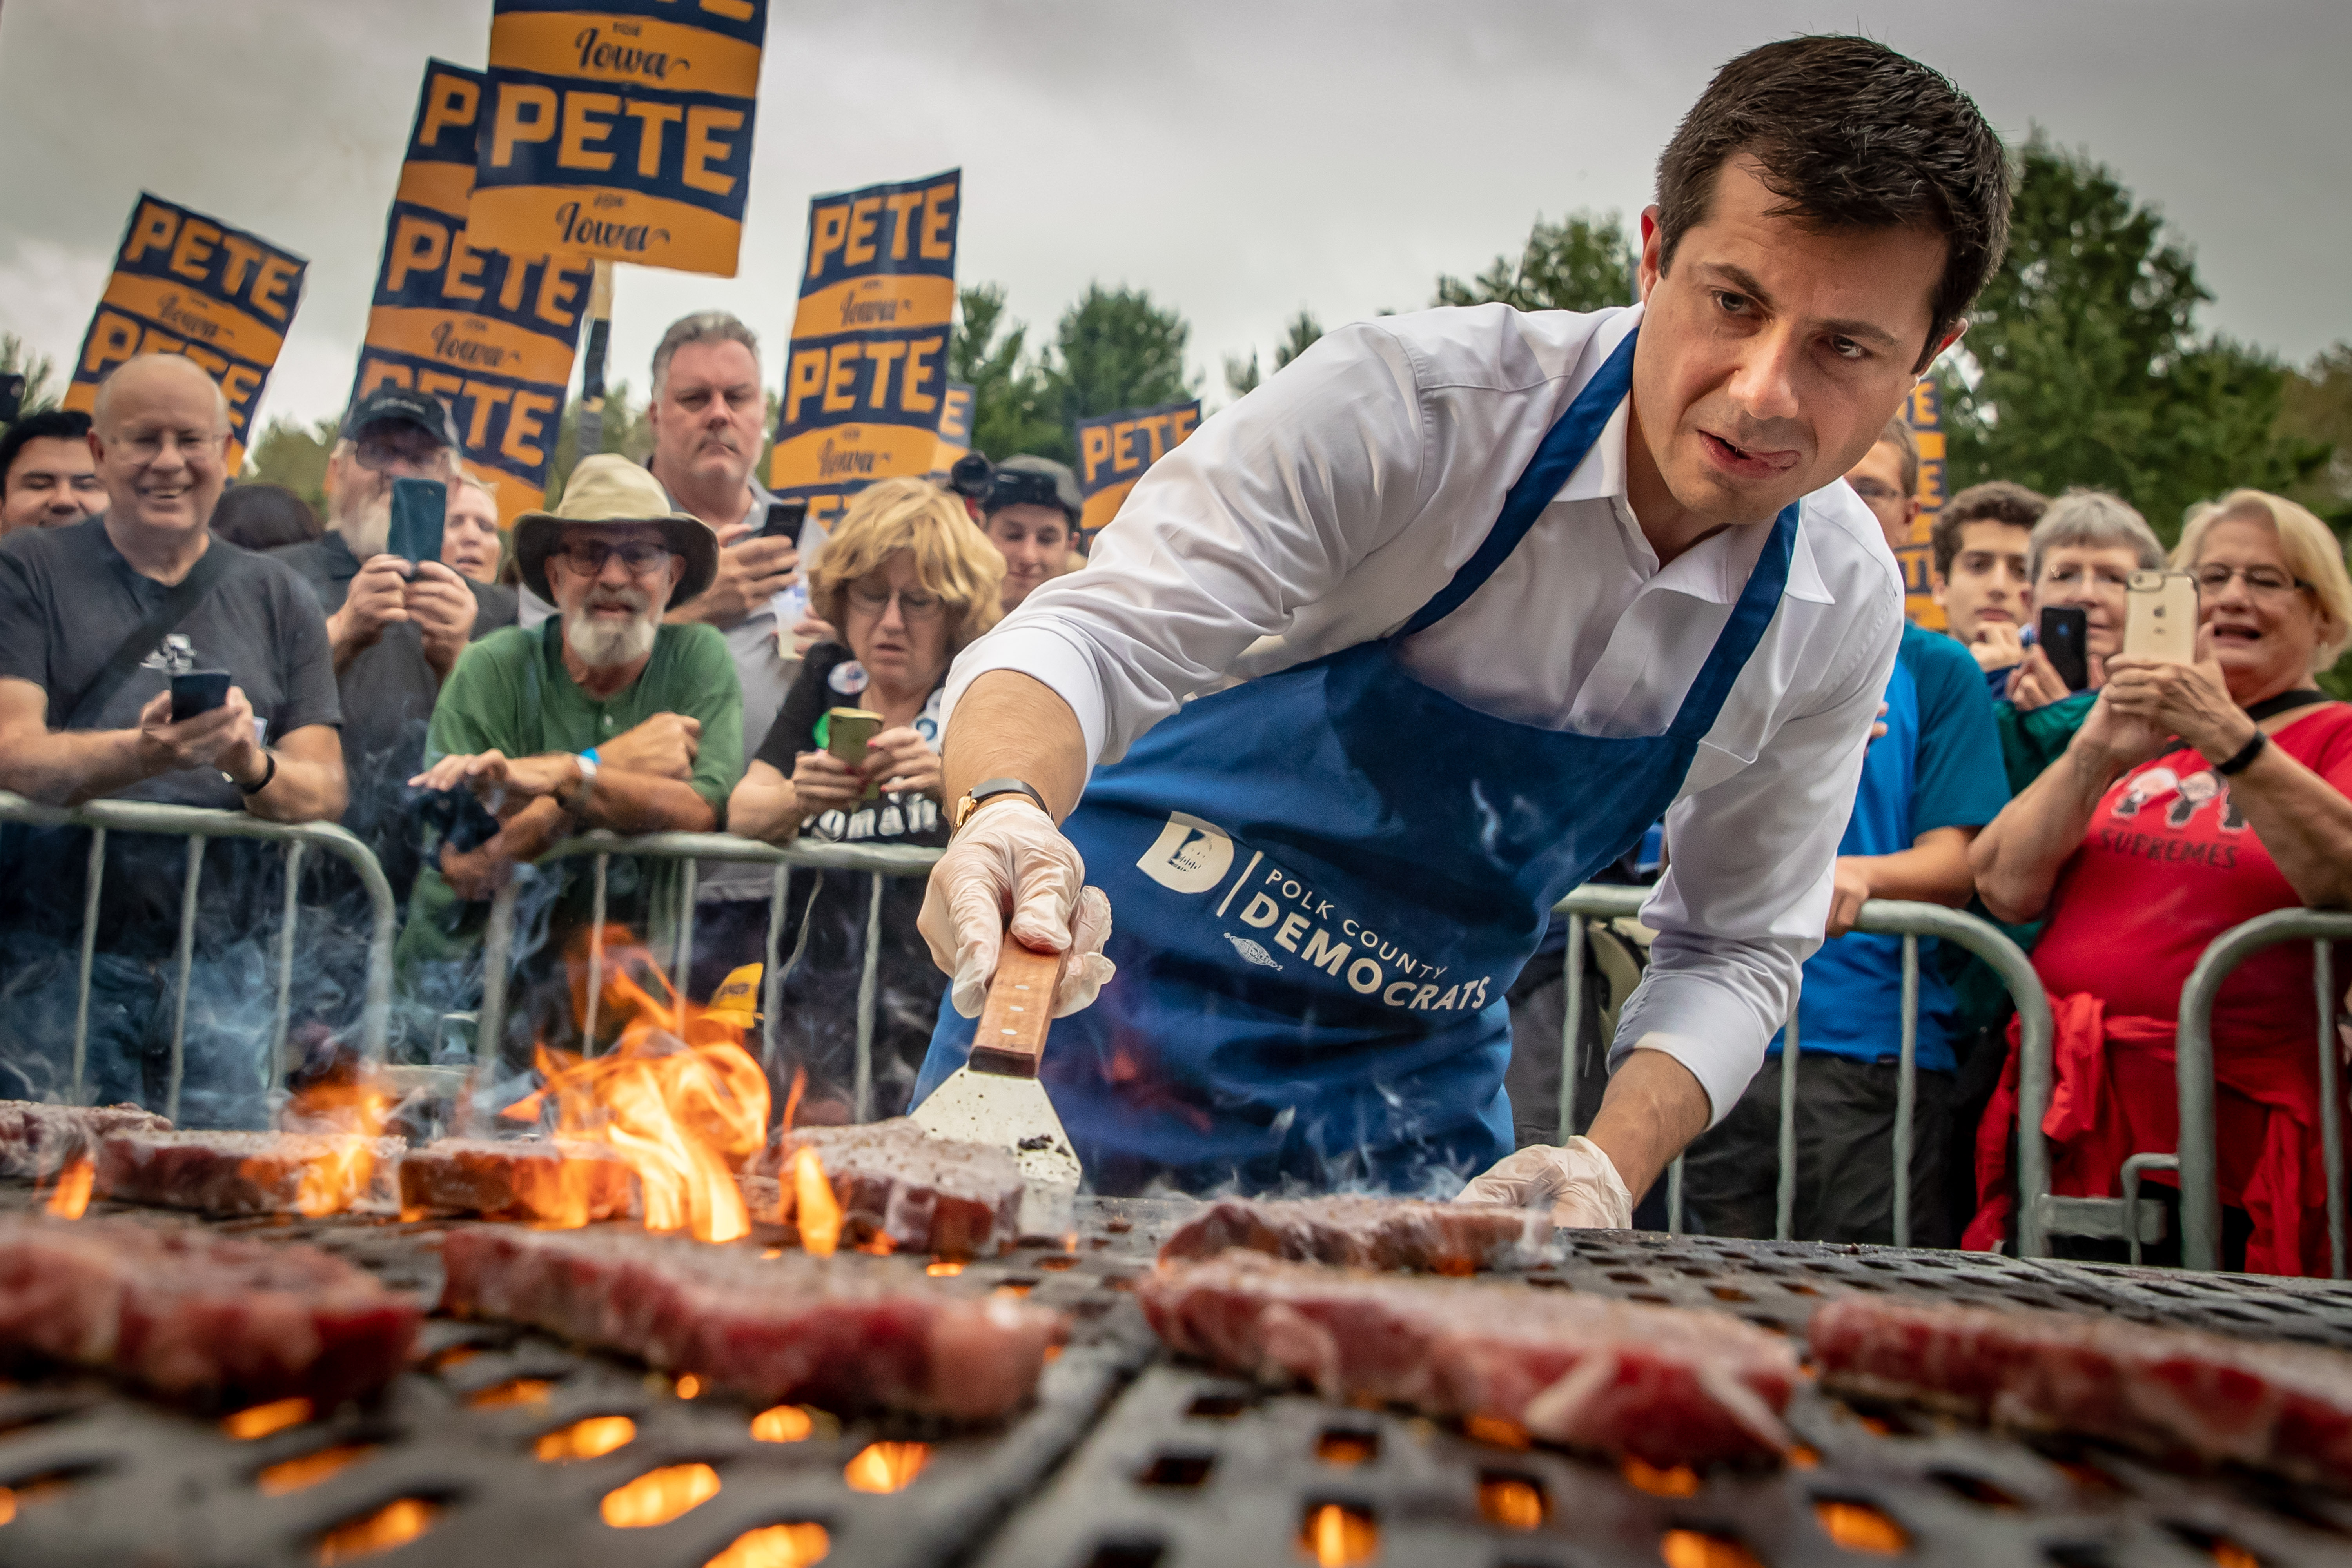 Pete Buttigieg grills a steak as supporters behind him hold signs and take photos.